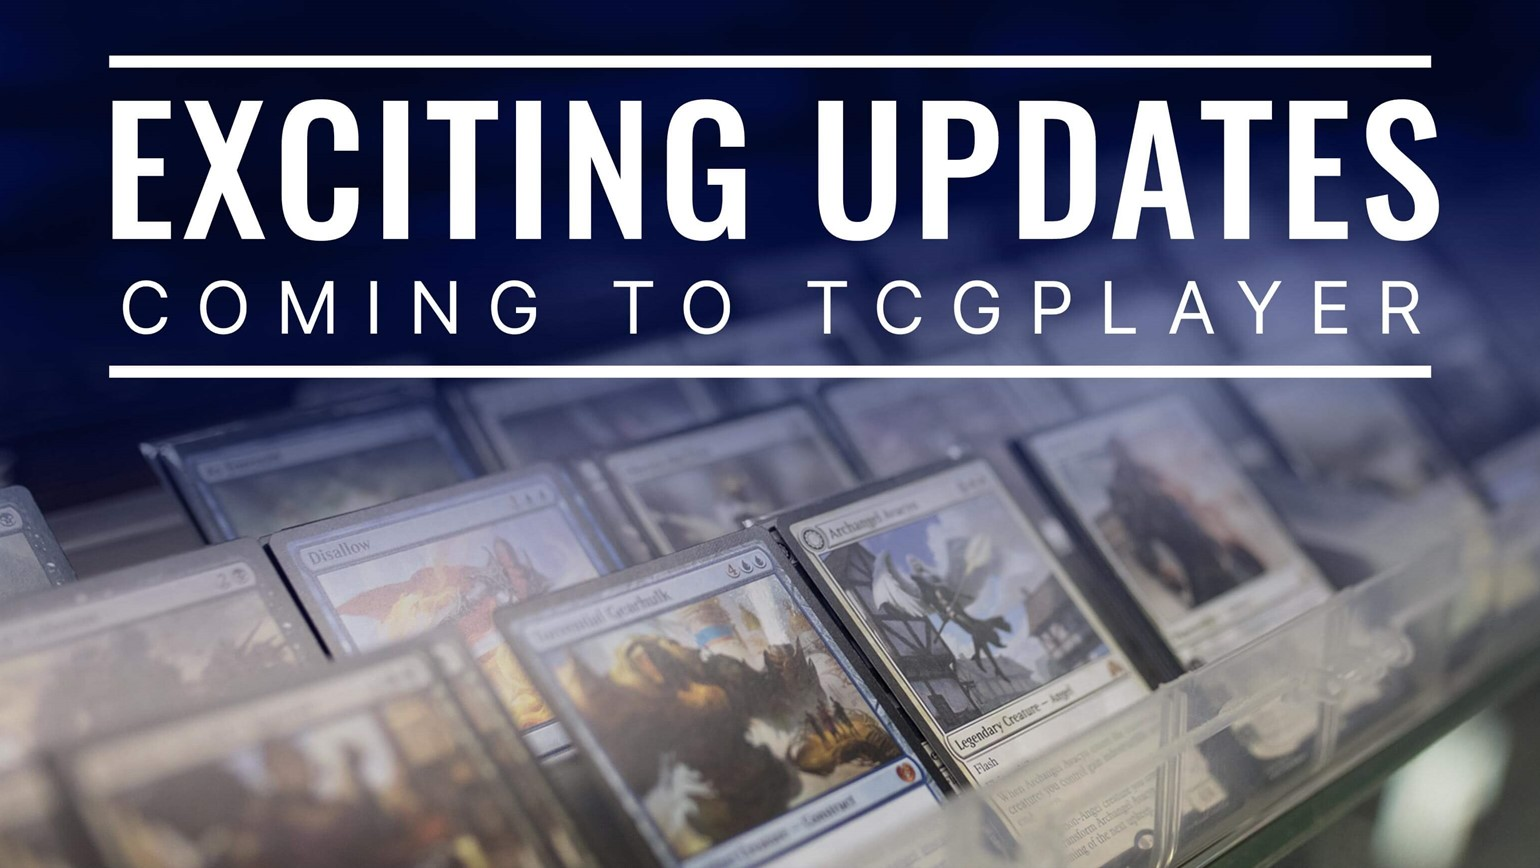 Exciting Updates Coming to TCGplayer